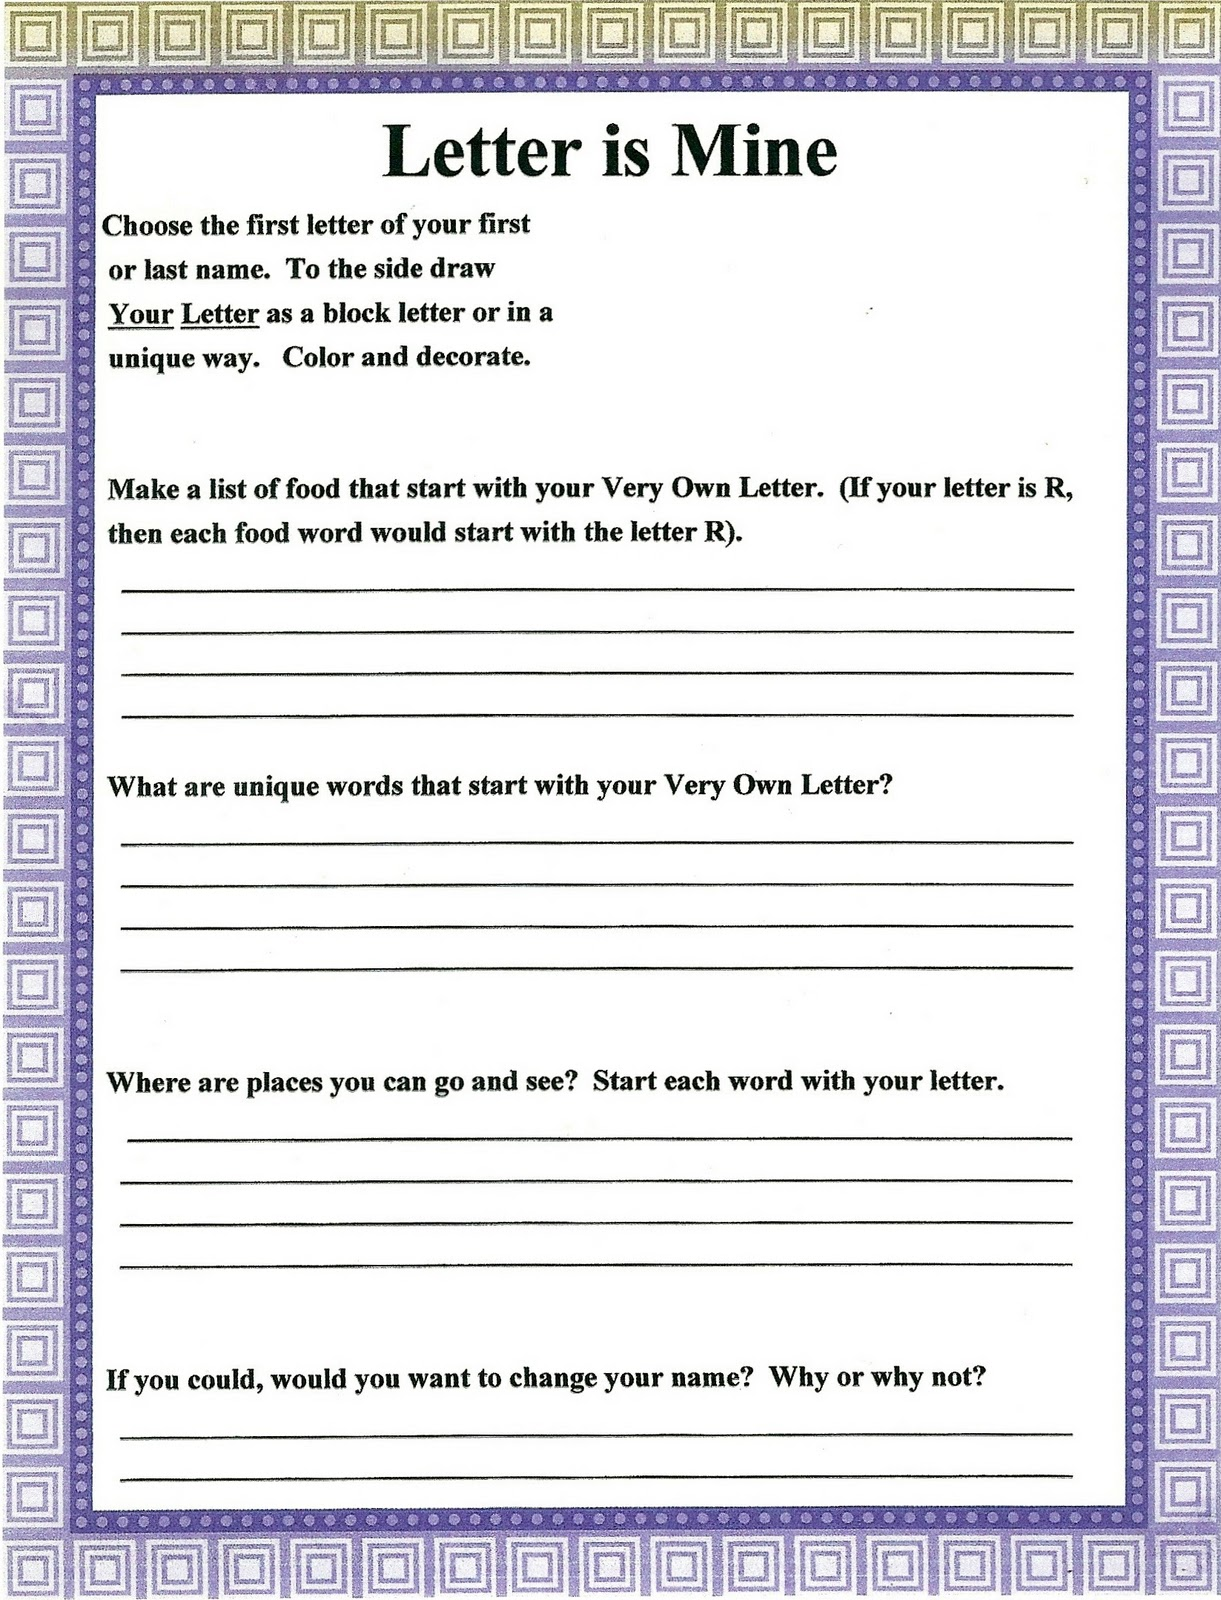 Worksheets Spanish Greetings And Goodbyes Worksheets spanish greetings and goodbyes worksheets imperialdesignstudio cool lorinda character education my favorite letter is mine self